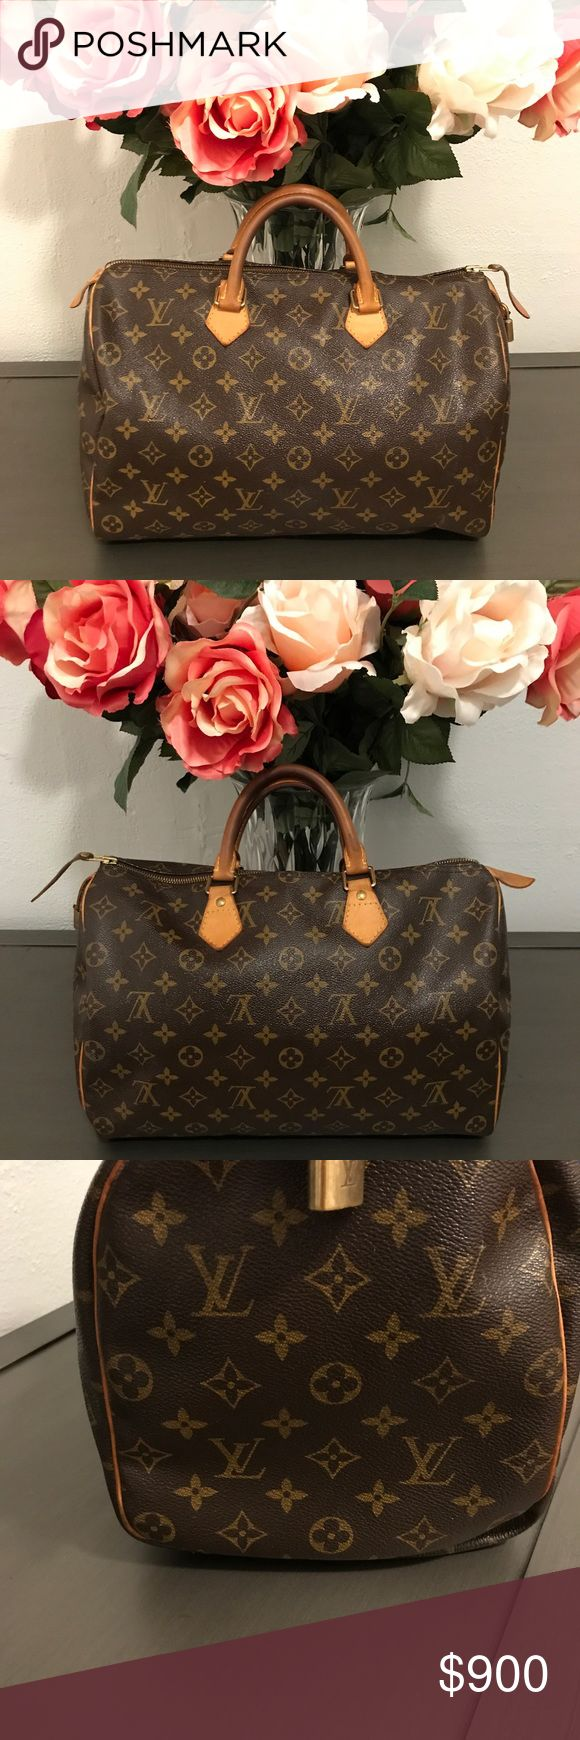 Louis Vuitton Speedy 35 Authentic LV. In great condition. I use CPR Leather conditioner to keep all my handbags youthful. Measurements are 13.8 x 9.1 x 7.1 inches. No dust bag or lock key. Can provide a generic dust bag if need be. Louis Vuitton Bags Satchels